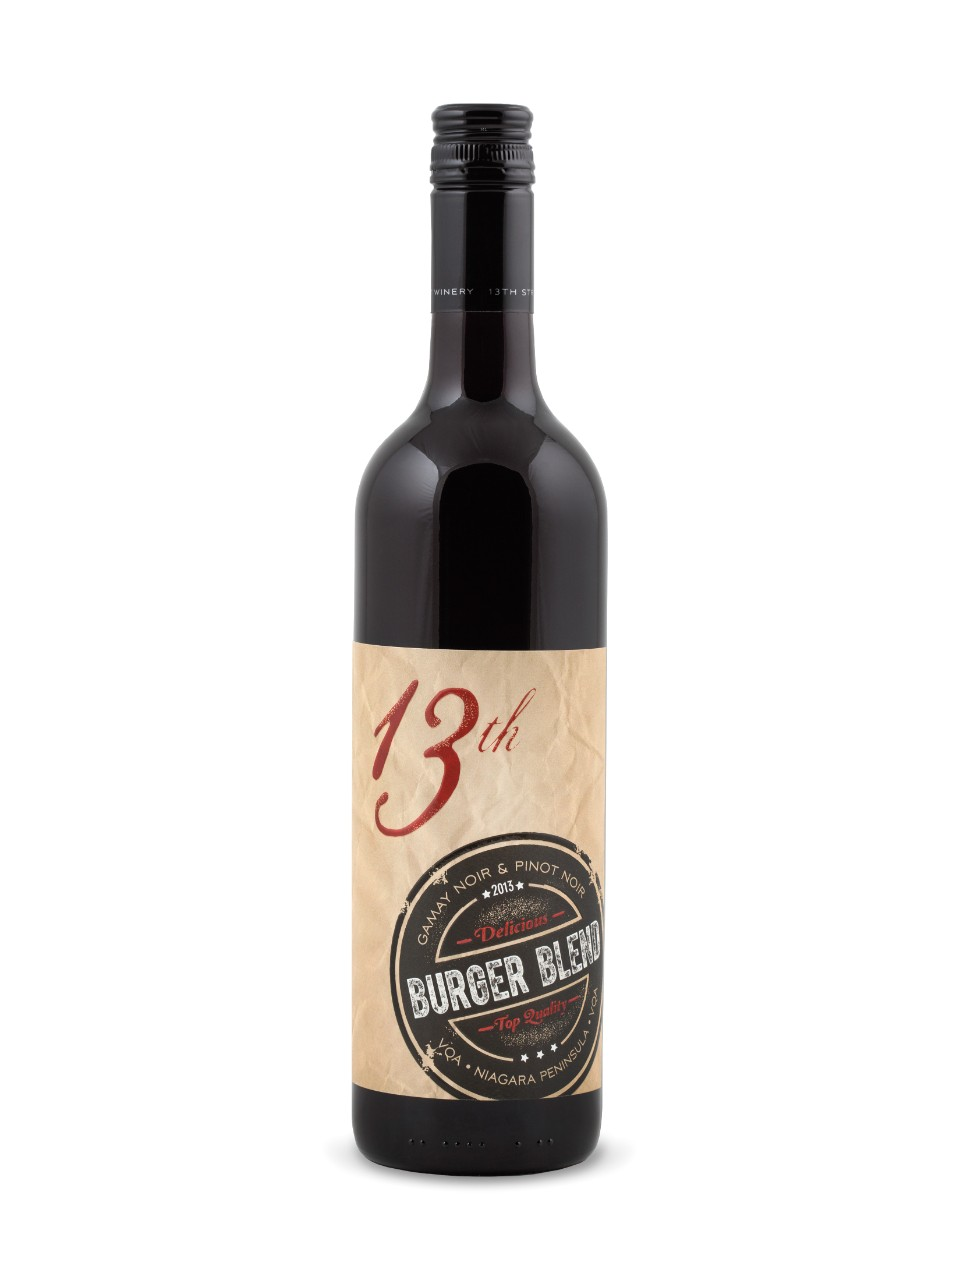 Image for 13th Street Burger Blend Gamay Pinot Noir VQA from LCBO